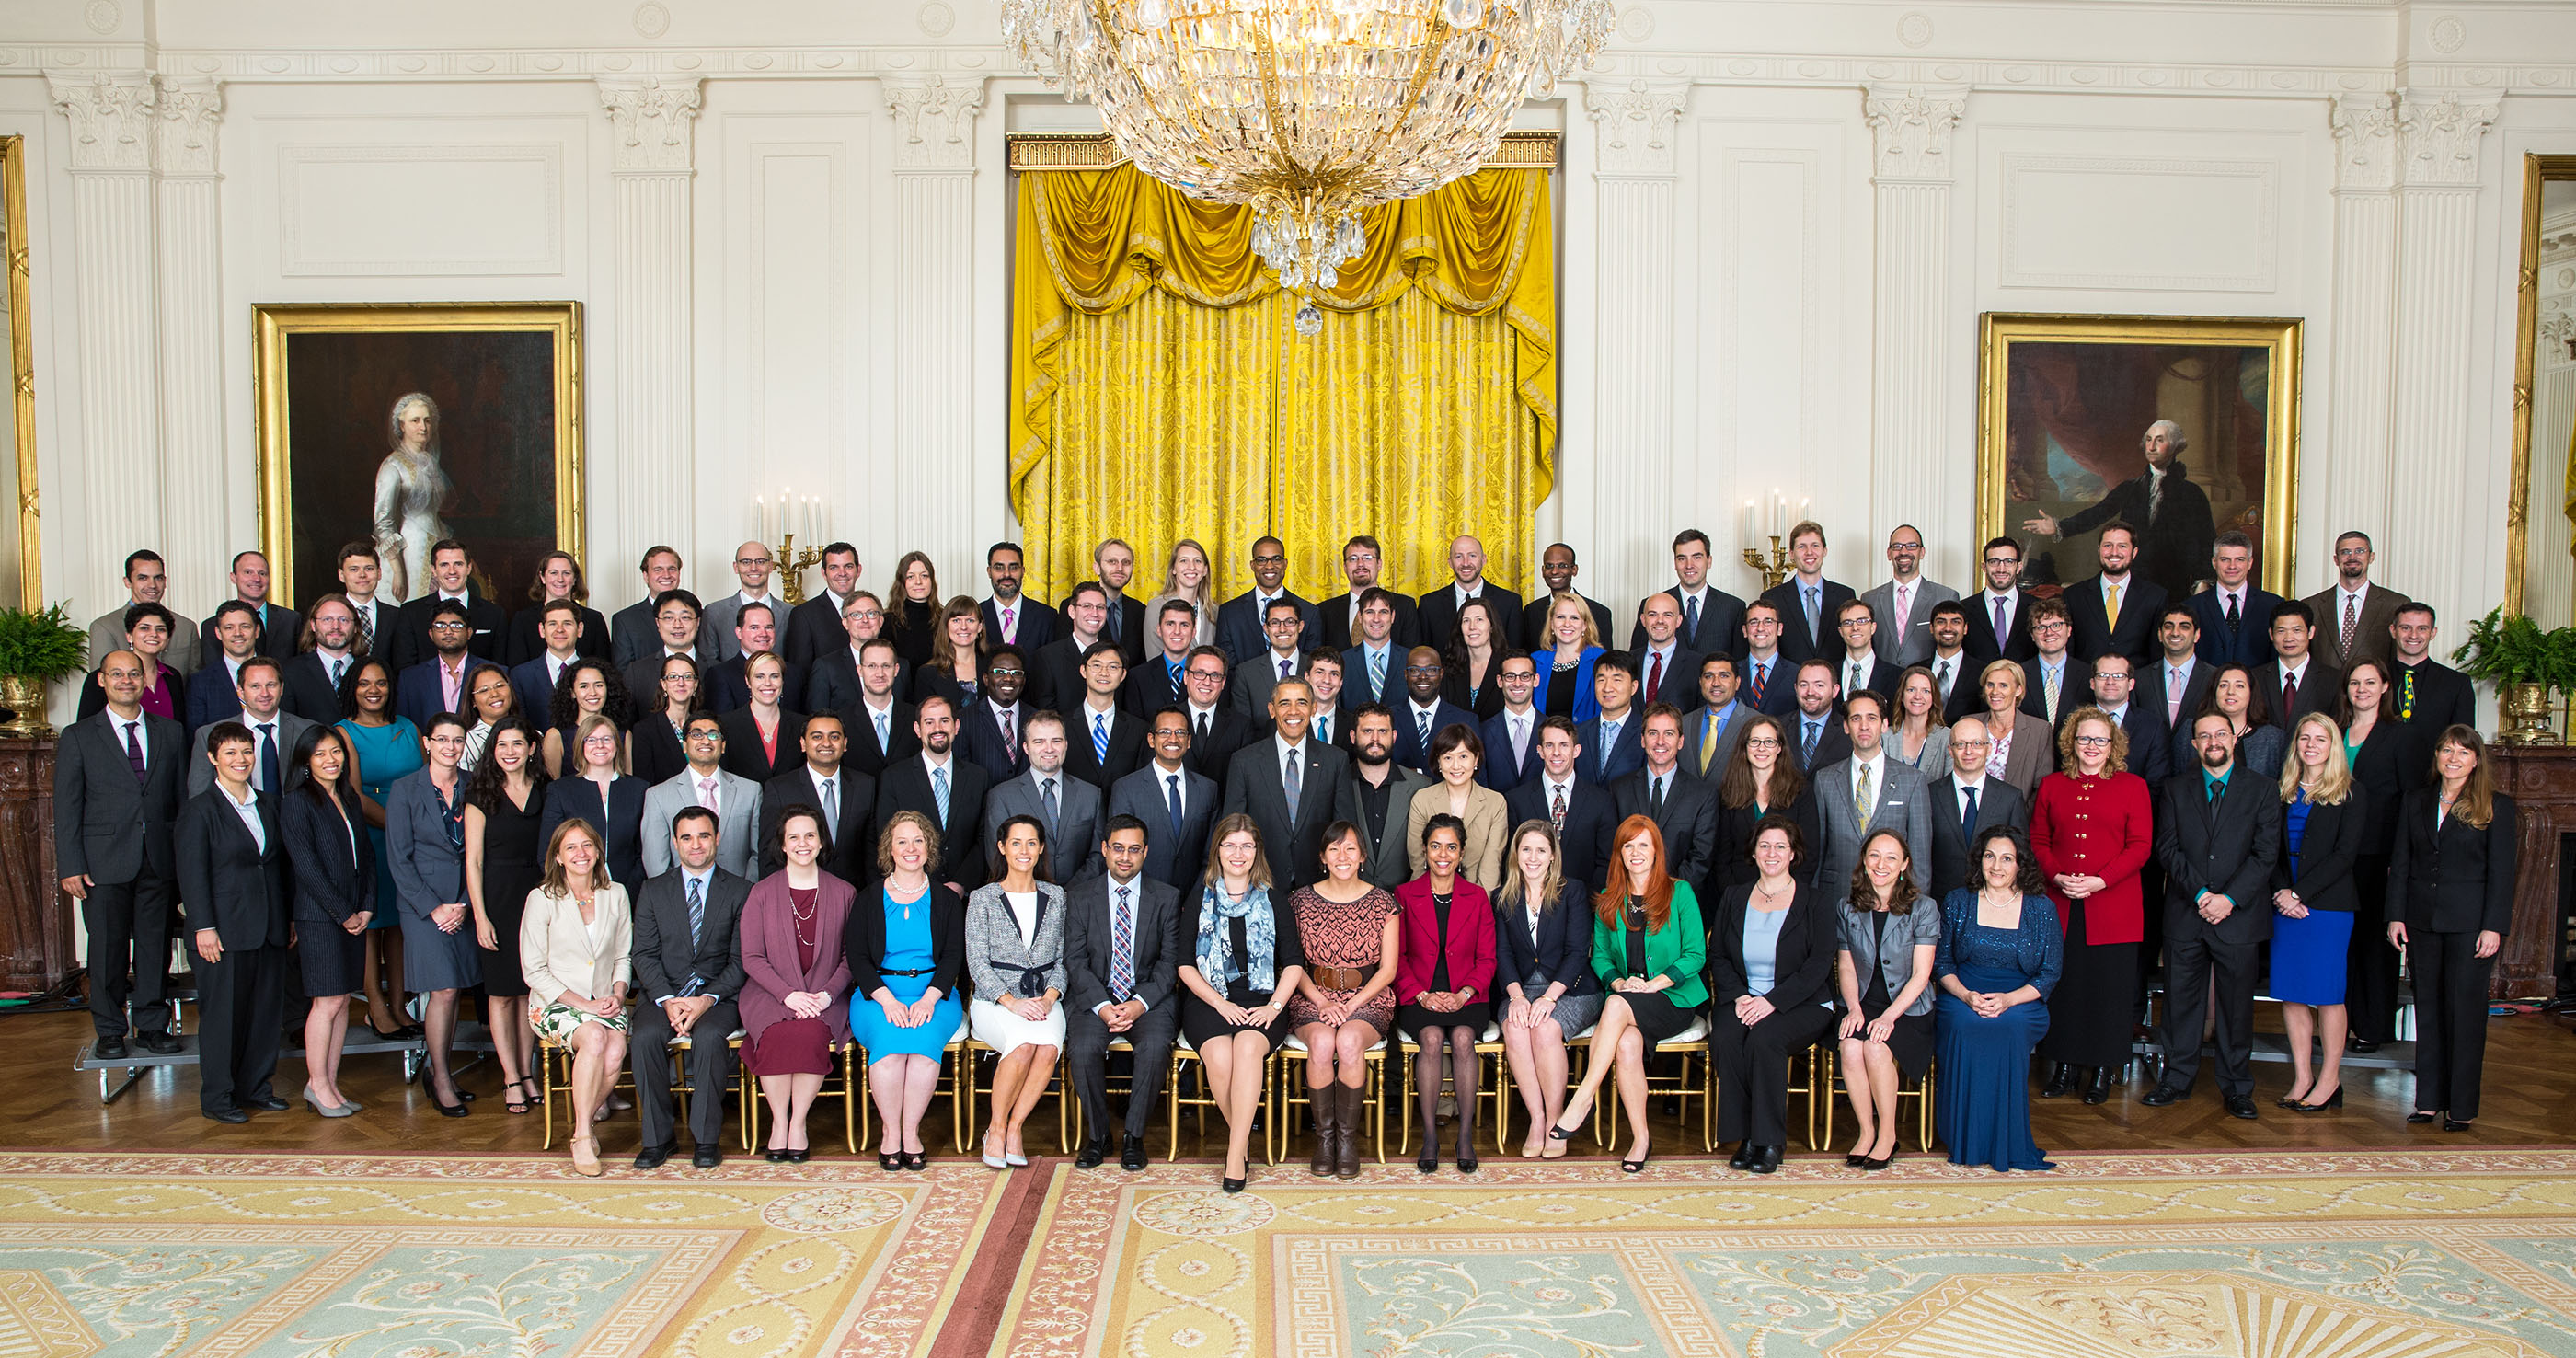 President Barack Obama joins recipients of the Presidential Early Career Award for Scientists and Engineers (PECASE) for a group photo in the East Room of the White House, May 5, 2016. (Official White House Photo by Lawrence Jackson)